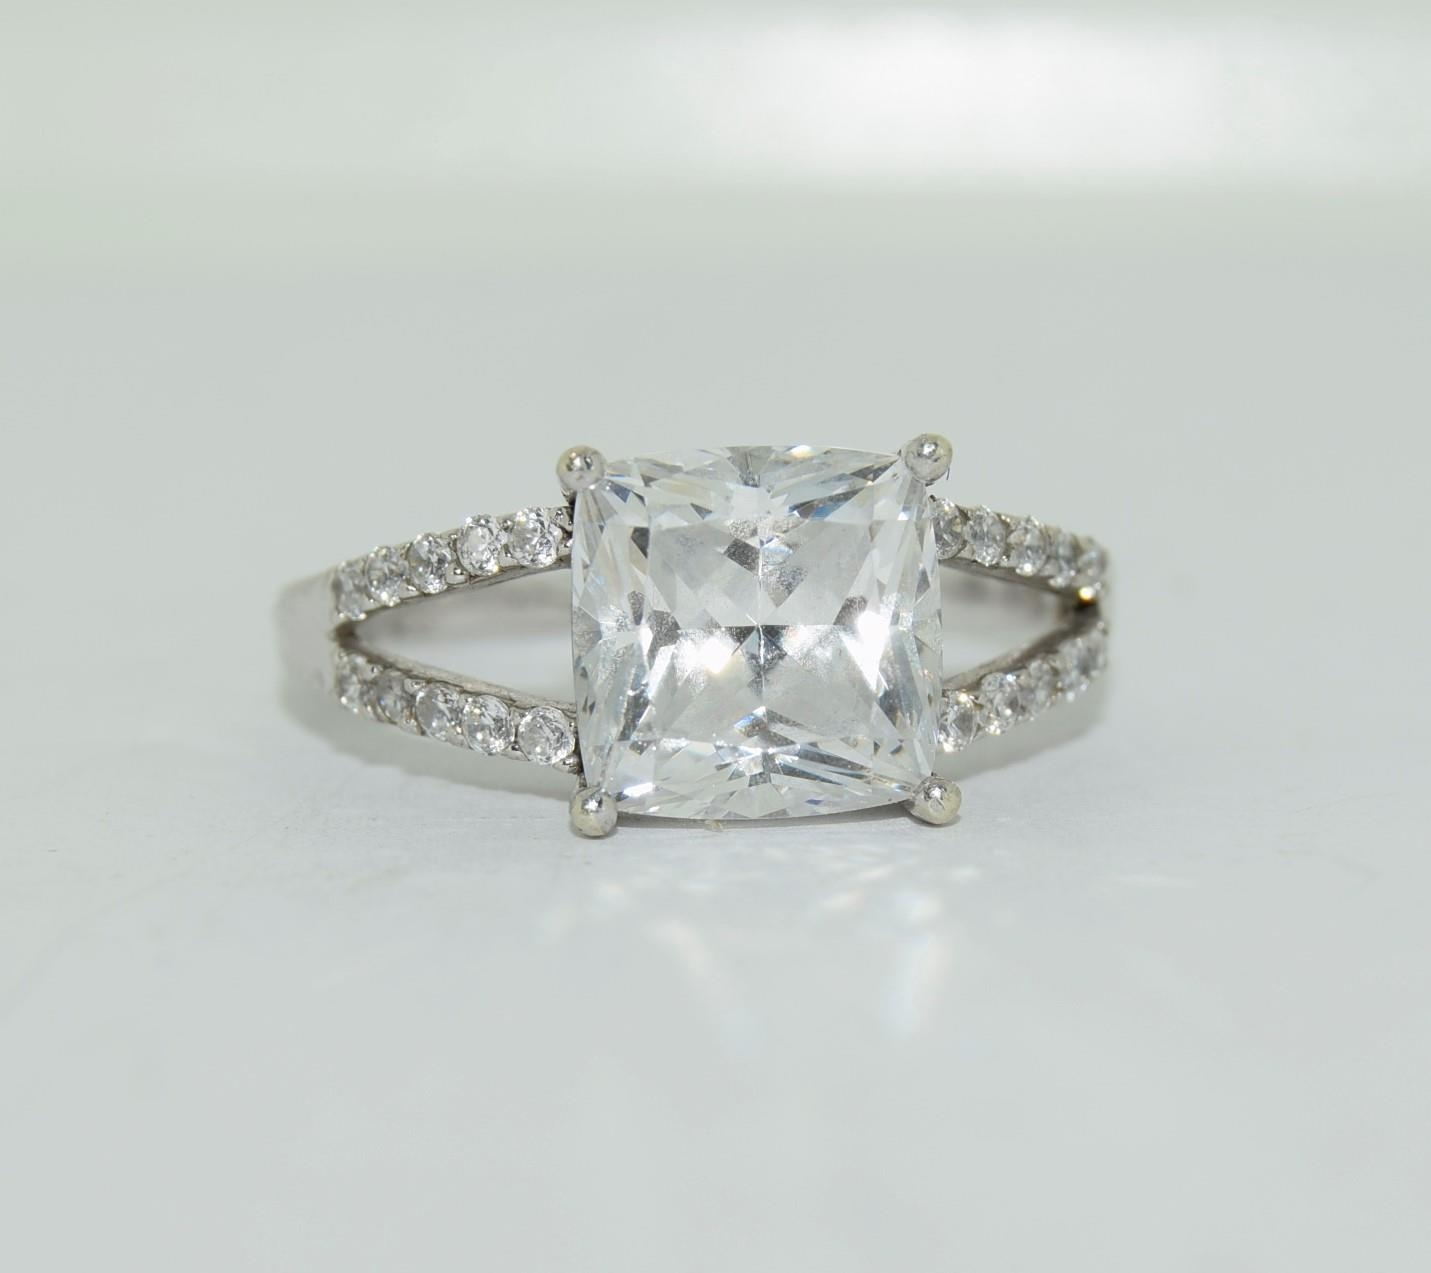 9ct white gold ladies square set solitare ring size R - Image 12 of 12